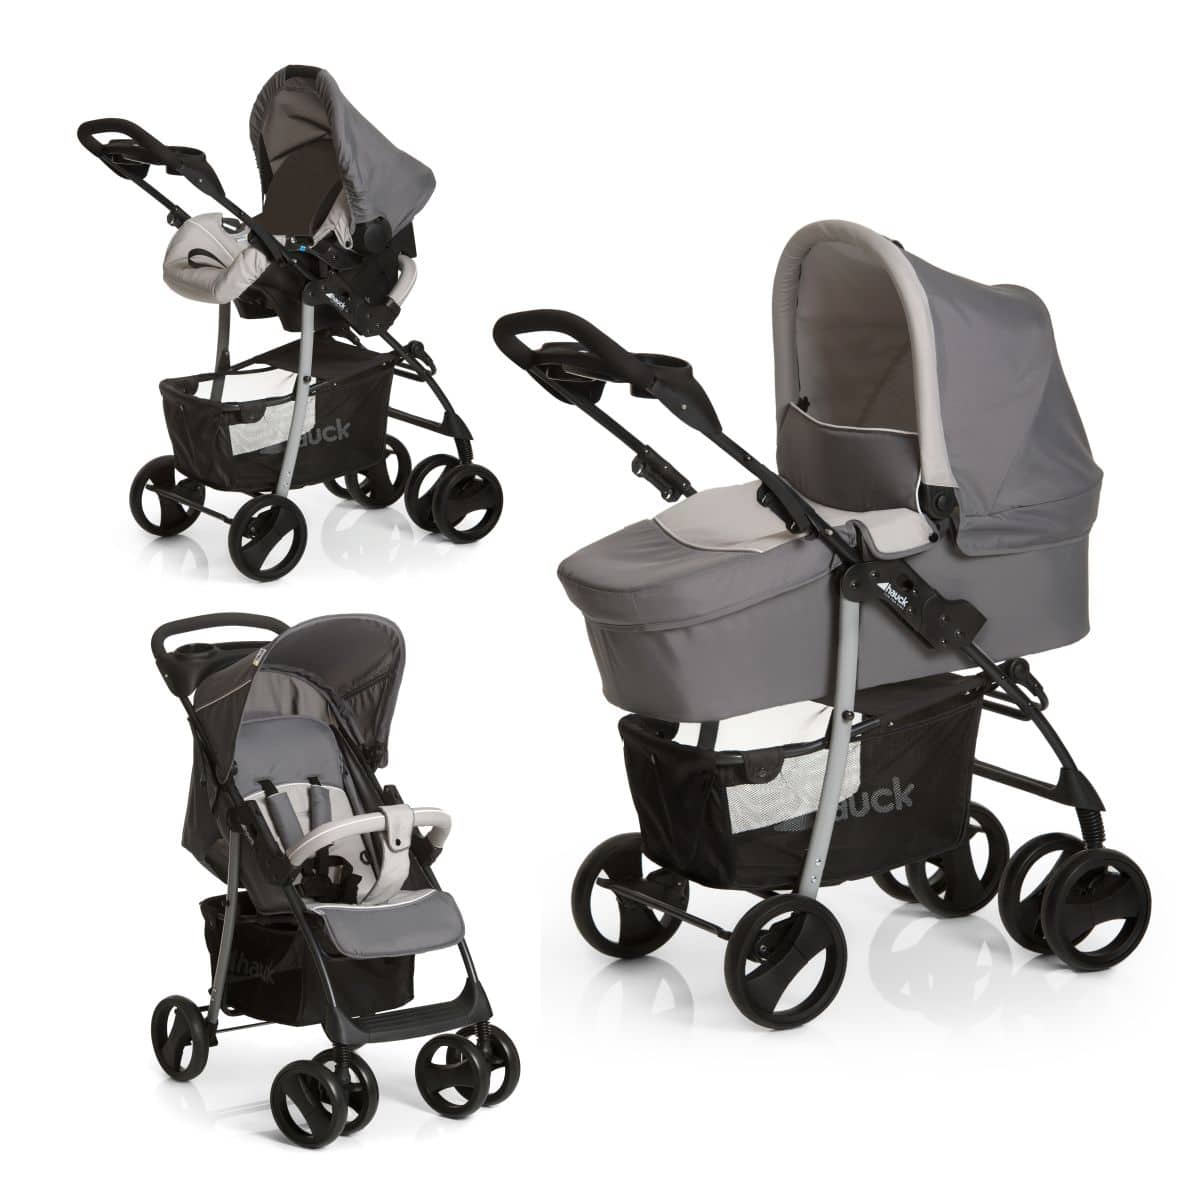 hauck shopper slx trio kinderwagen set stone grey. Black Bedroom Furniture Sets. Home Design Ideas